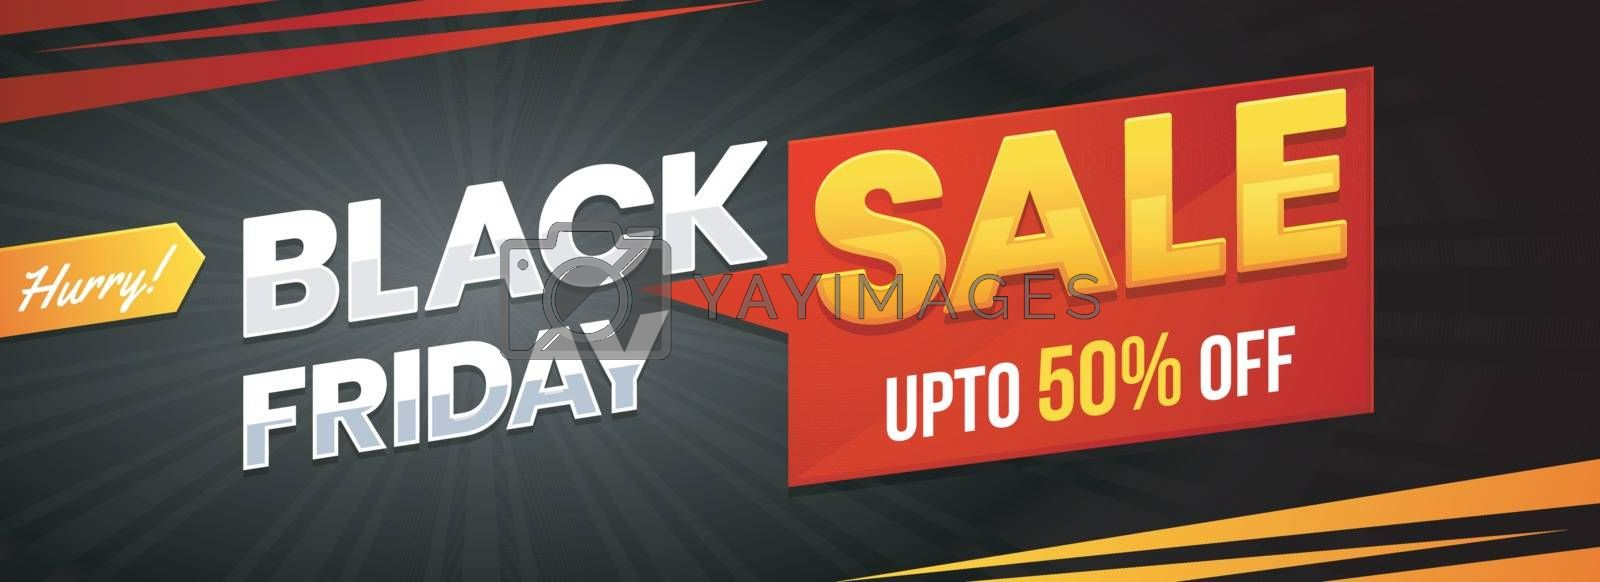 Upto 50% discount offer for Black Friday Sale. Website banner or header design.